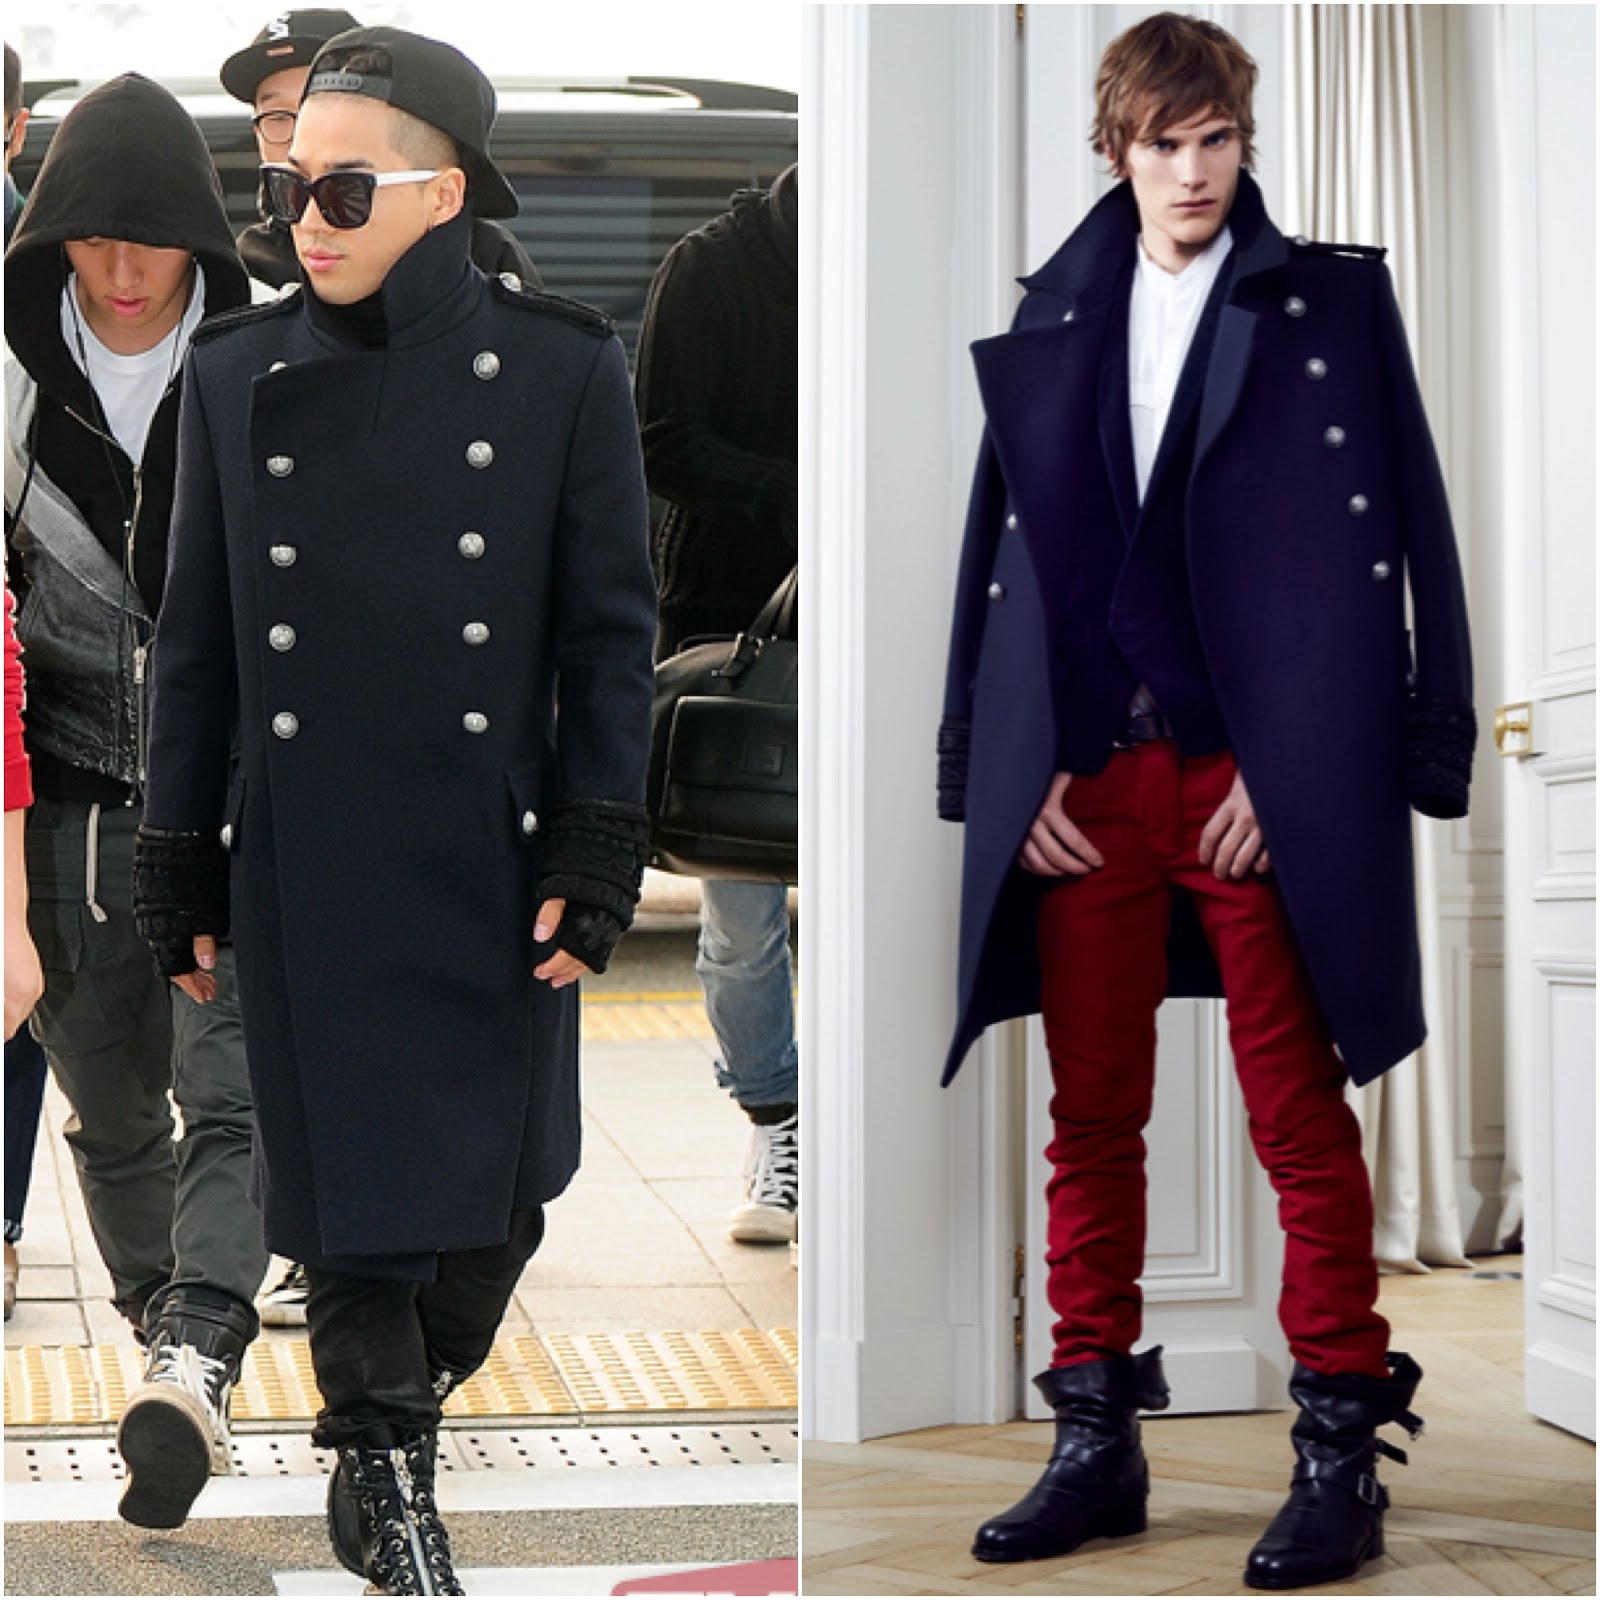 00o00 London Menswear Blog Celebrity Style TaeYang from BigBang in Balmain - Incheon Airport